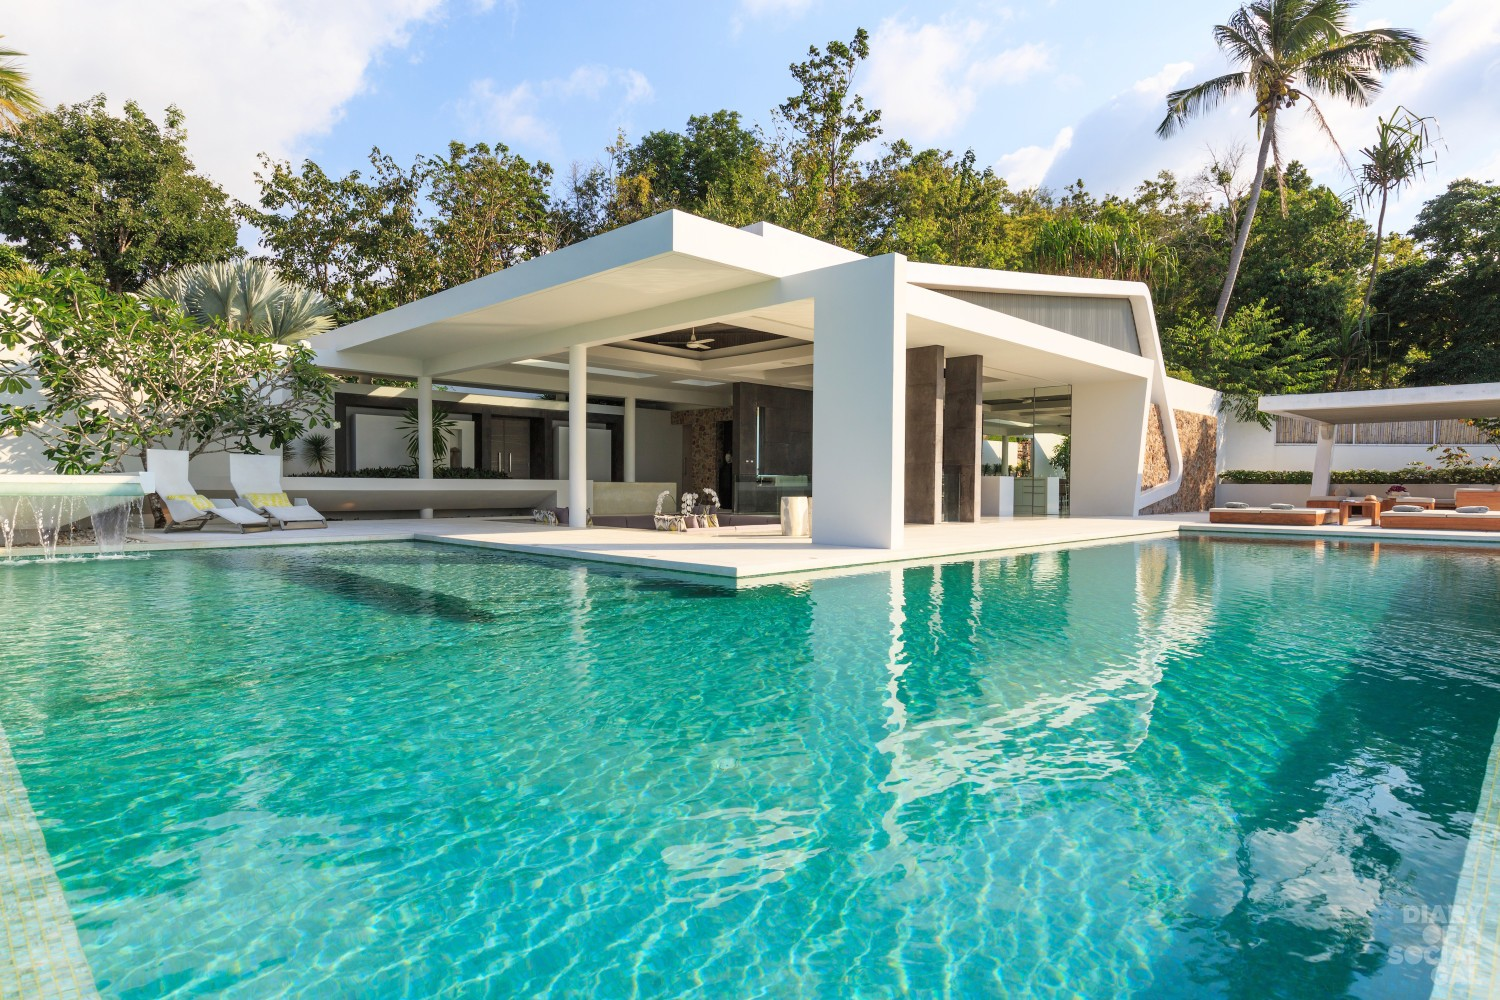 Celadon, a luxury and private villa located in the hills of Ban Por with ocean view, Koh Samui, Thailand